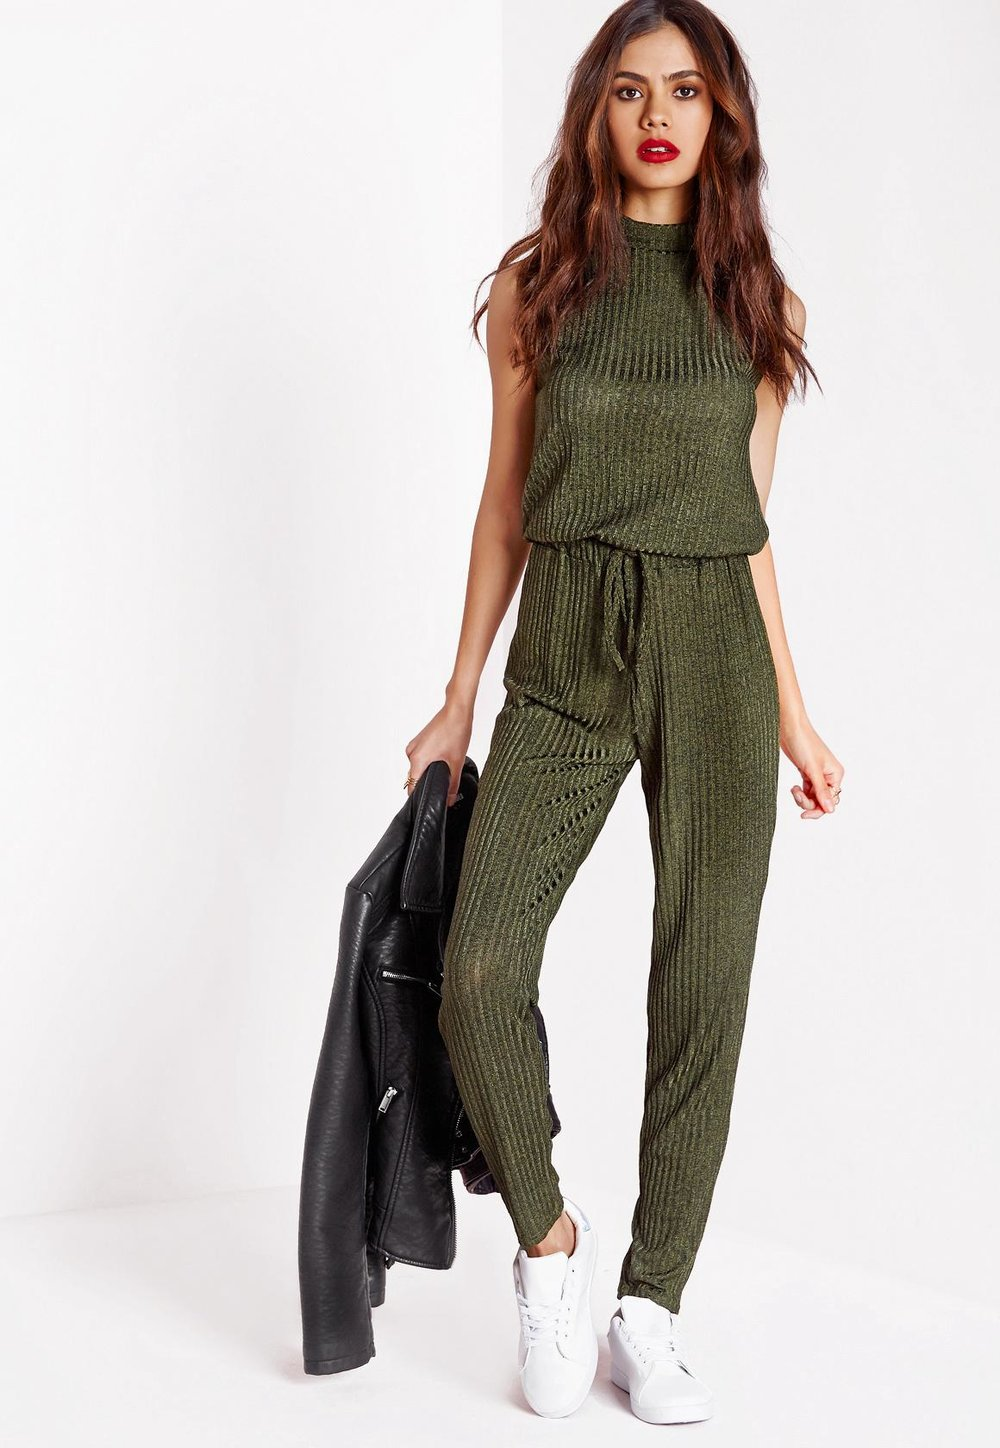 1a4d8b37035 green-olive-jumpsuit-black-jacket-moto-white-shoe-